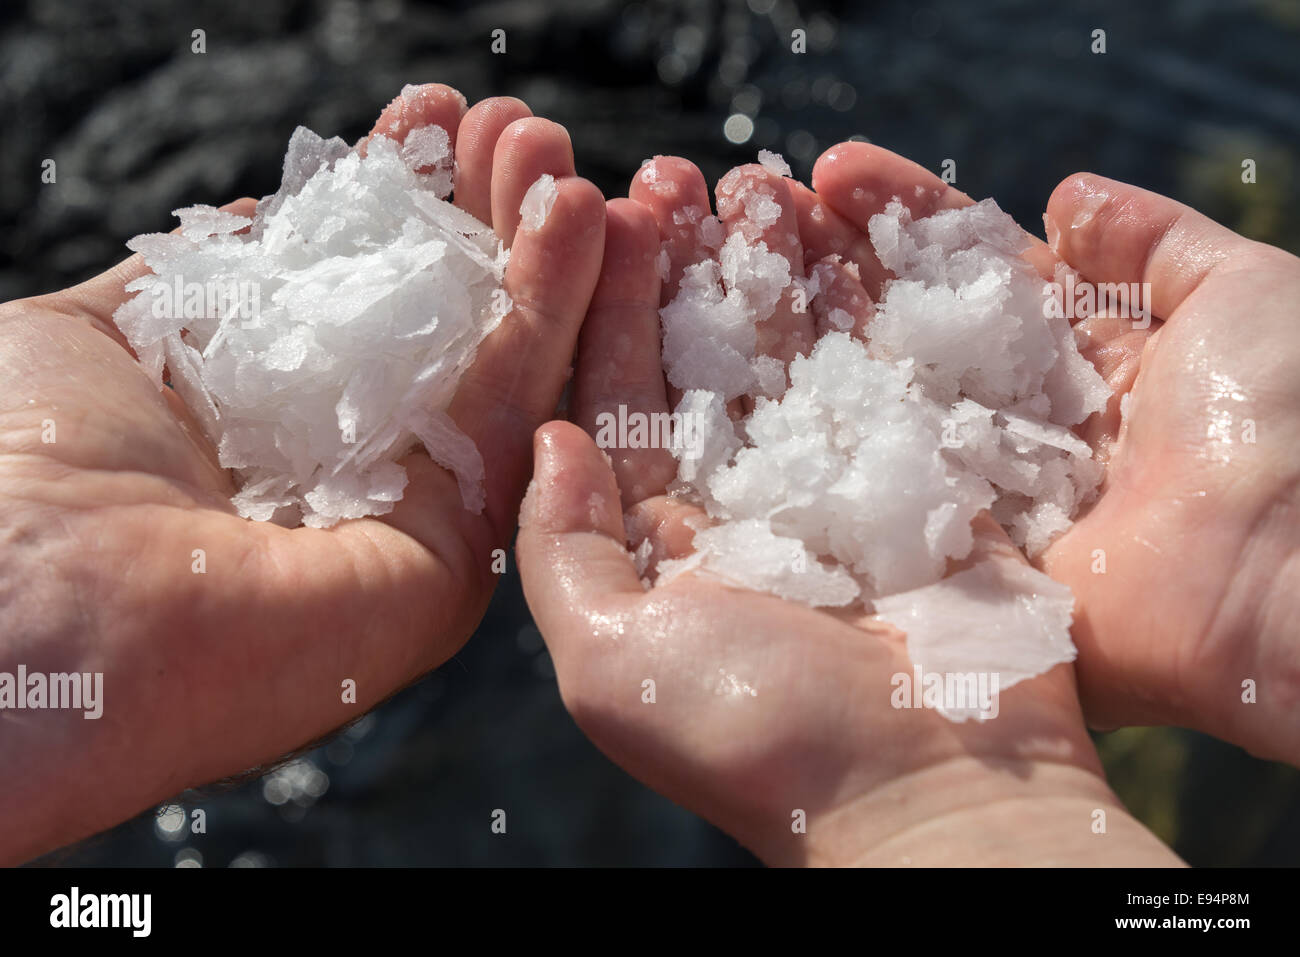 Sea Salt Solt Three Hands Palms Holding White Closeup Medicine Food Ingredient - Stock Image